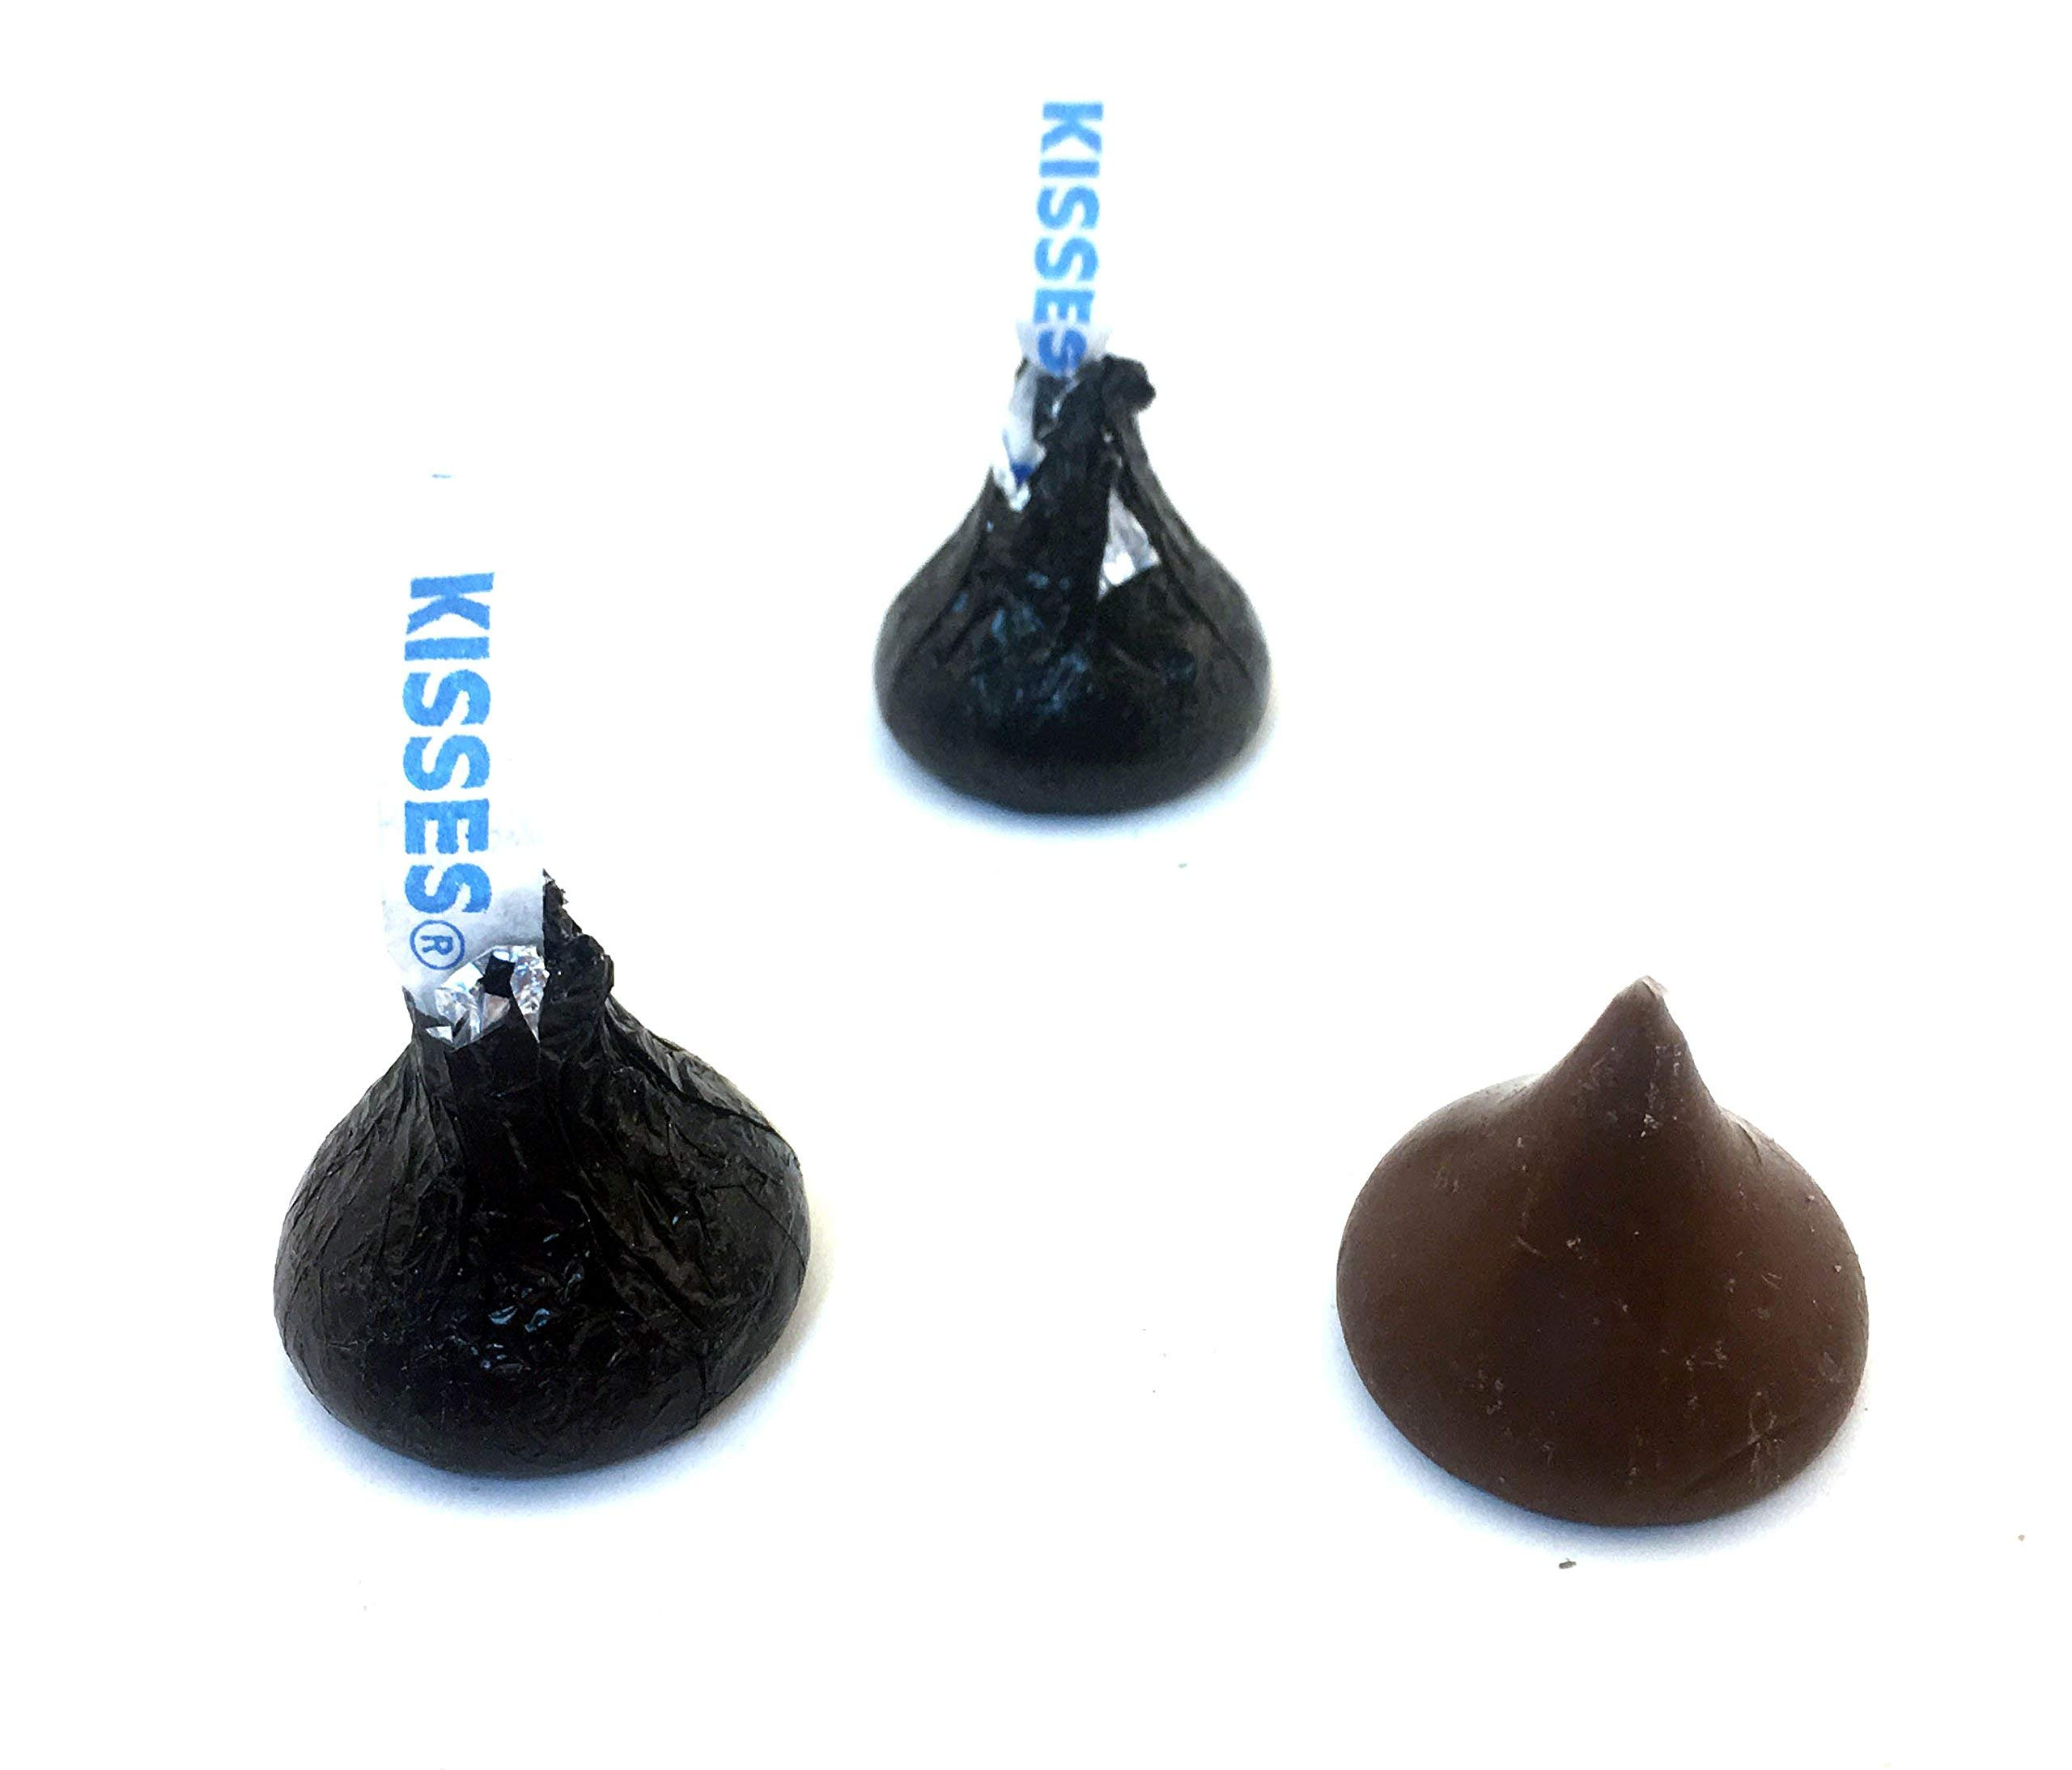 LaetaFood Bag - Hershey's Kisses, Milk Chocolate in Black Foil (Pack of 2 Pound)